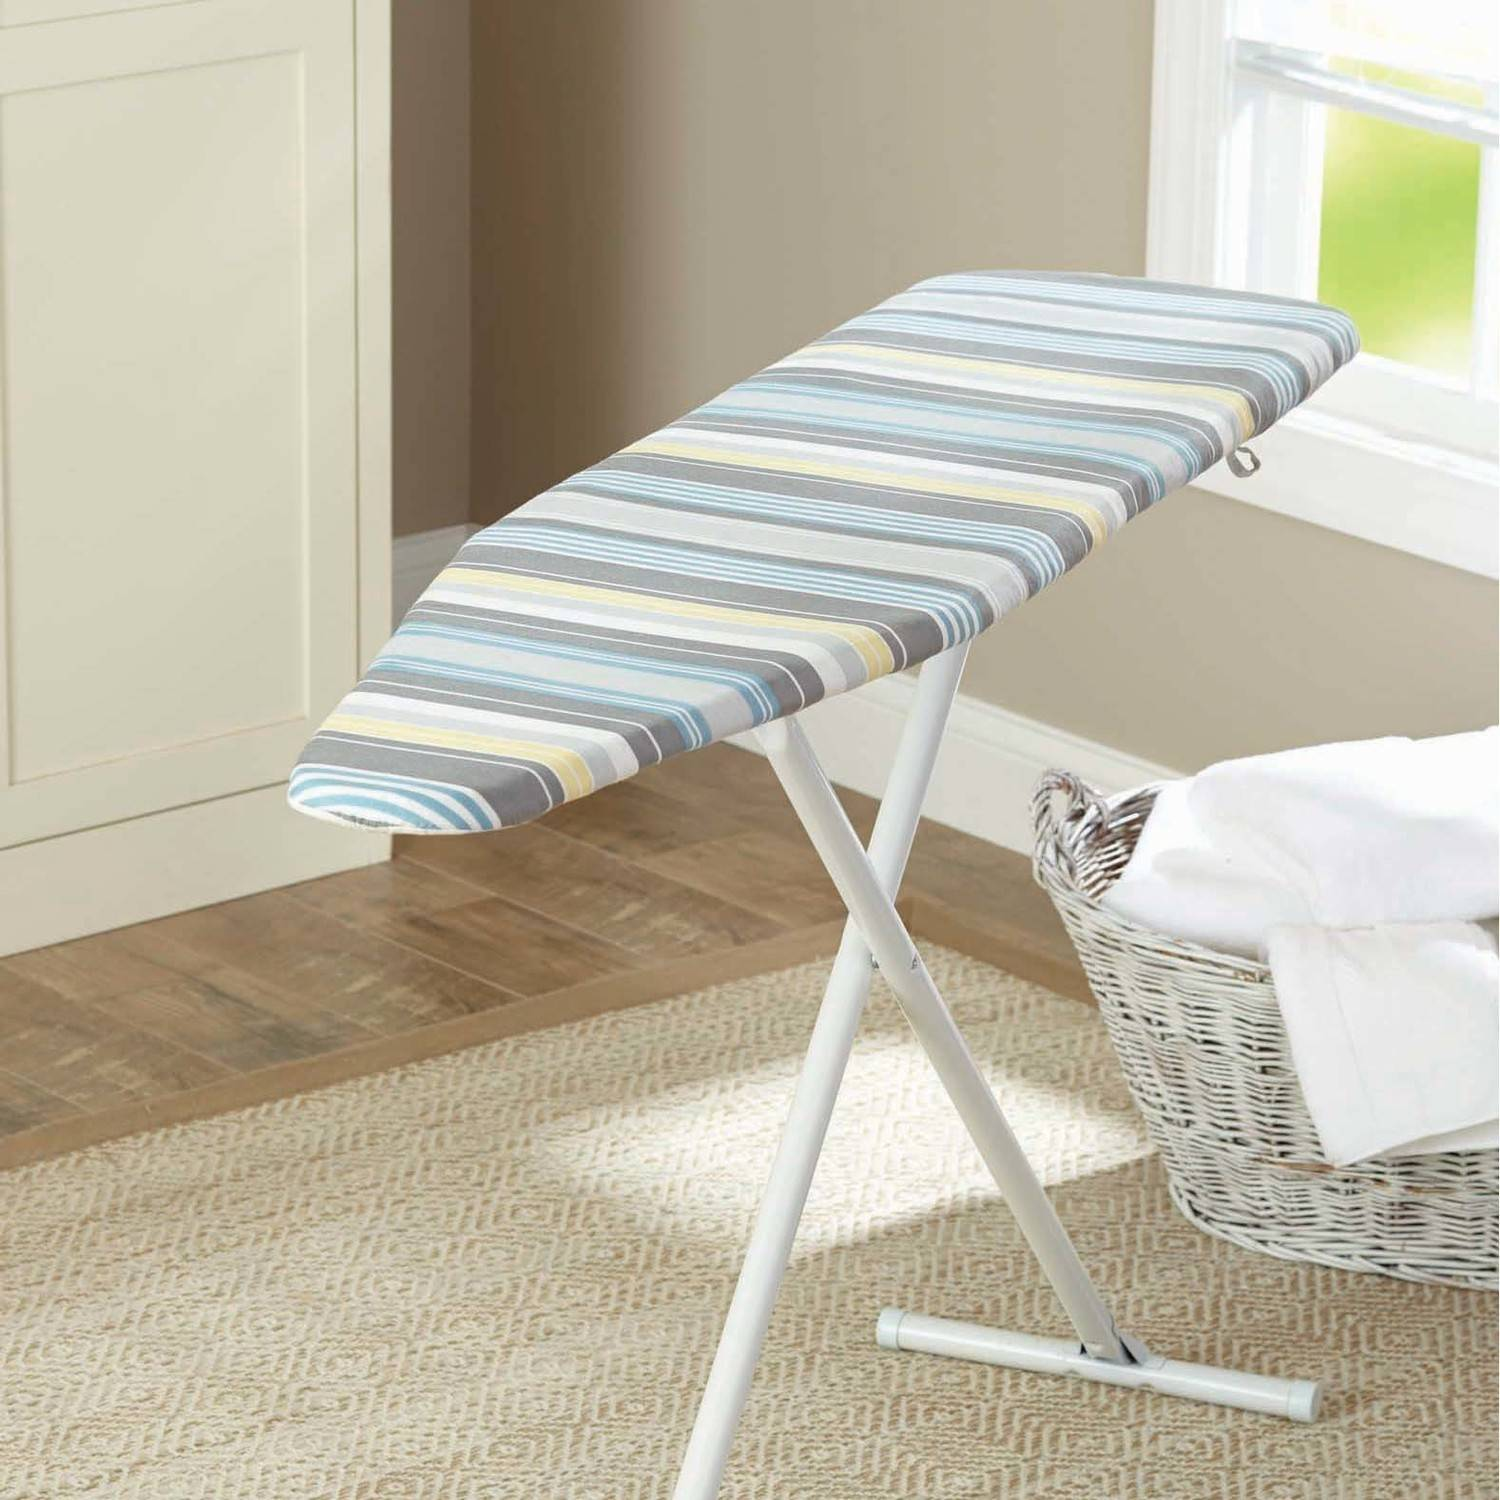 Better Homes and Gardens Reversible Ironing Board Pad and Cover